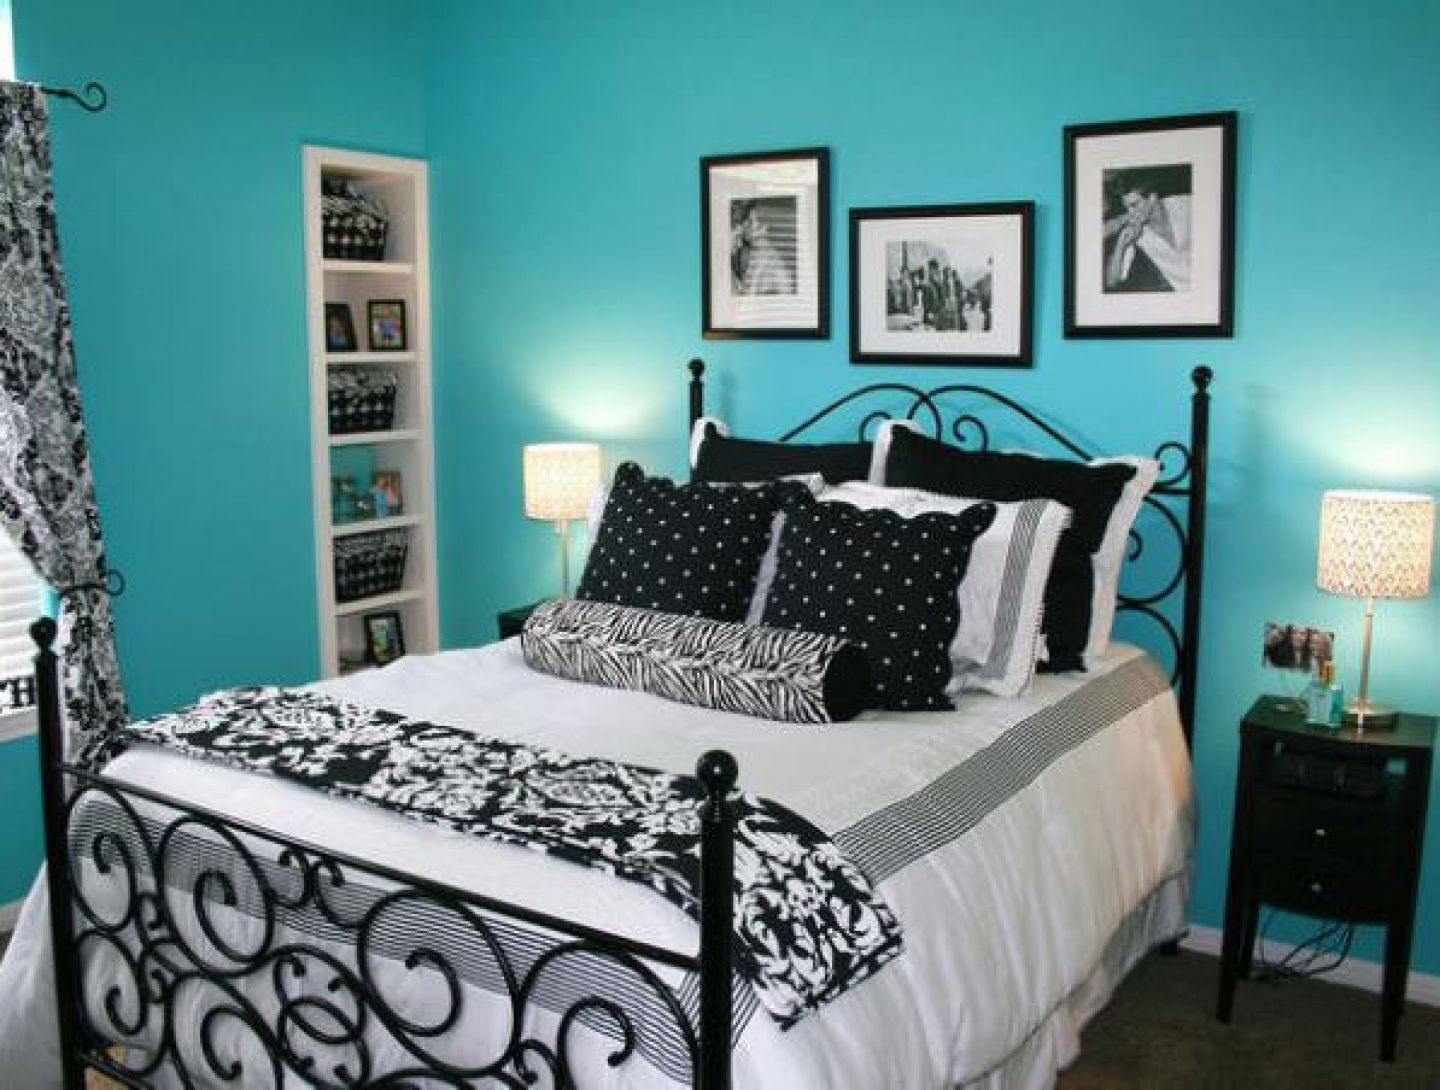 Bedroom designs for girls black - Wonderful Blue Themes Teenage Girl Room Ideas With Elegant Black Metal Bed Frame That Have White Bedding Complete With The Pillows And Beautiful Three